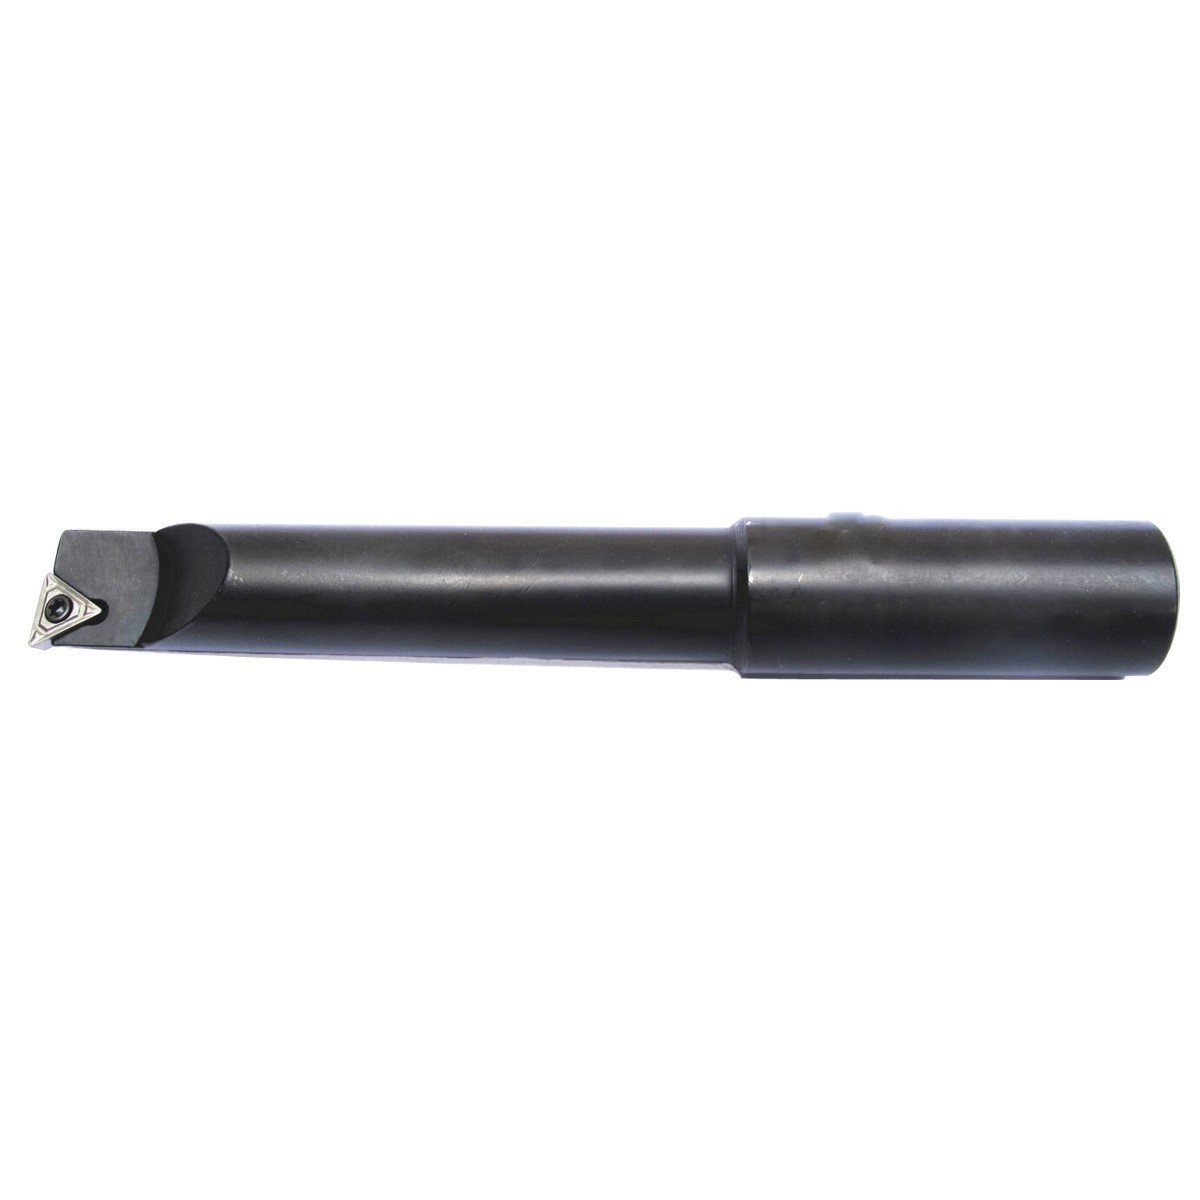 HHIP 1001 0745 Round Shank Indexable Boring Bar 3 x 1 2